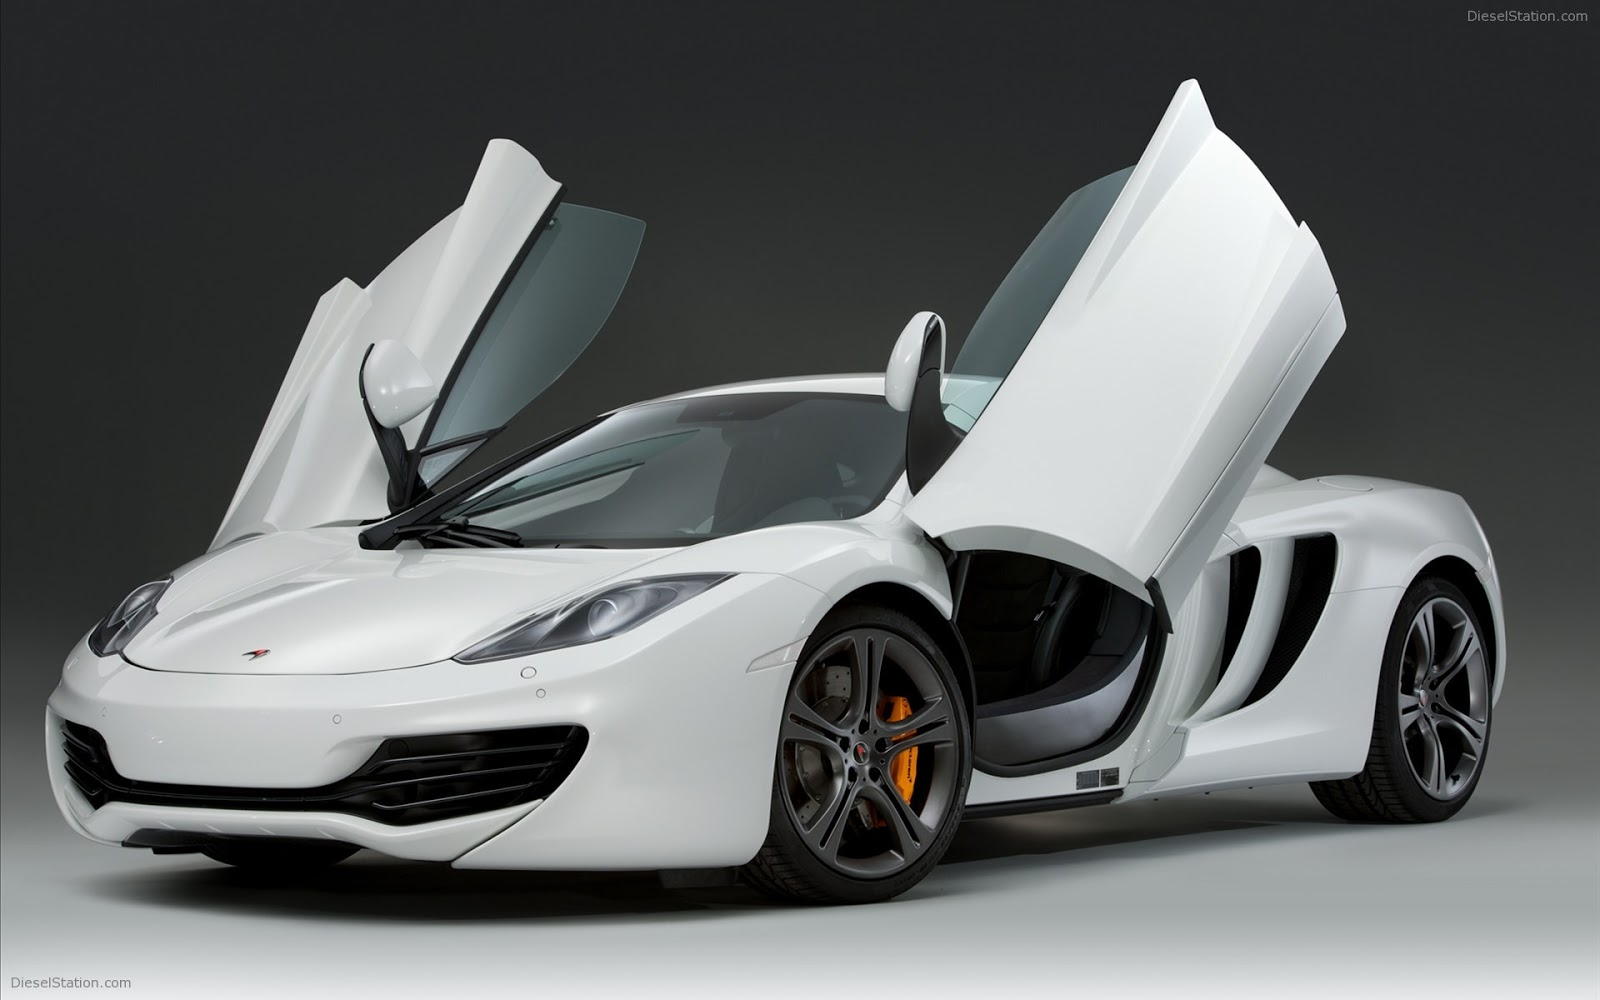 les voitures sport mclaren mp4 12c. Black Bedroom Furniture Sets. Home Design Ideas